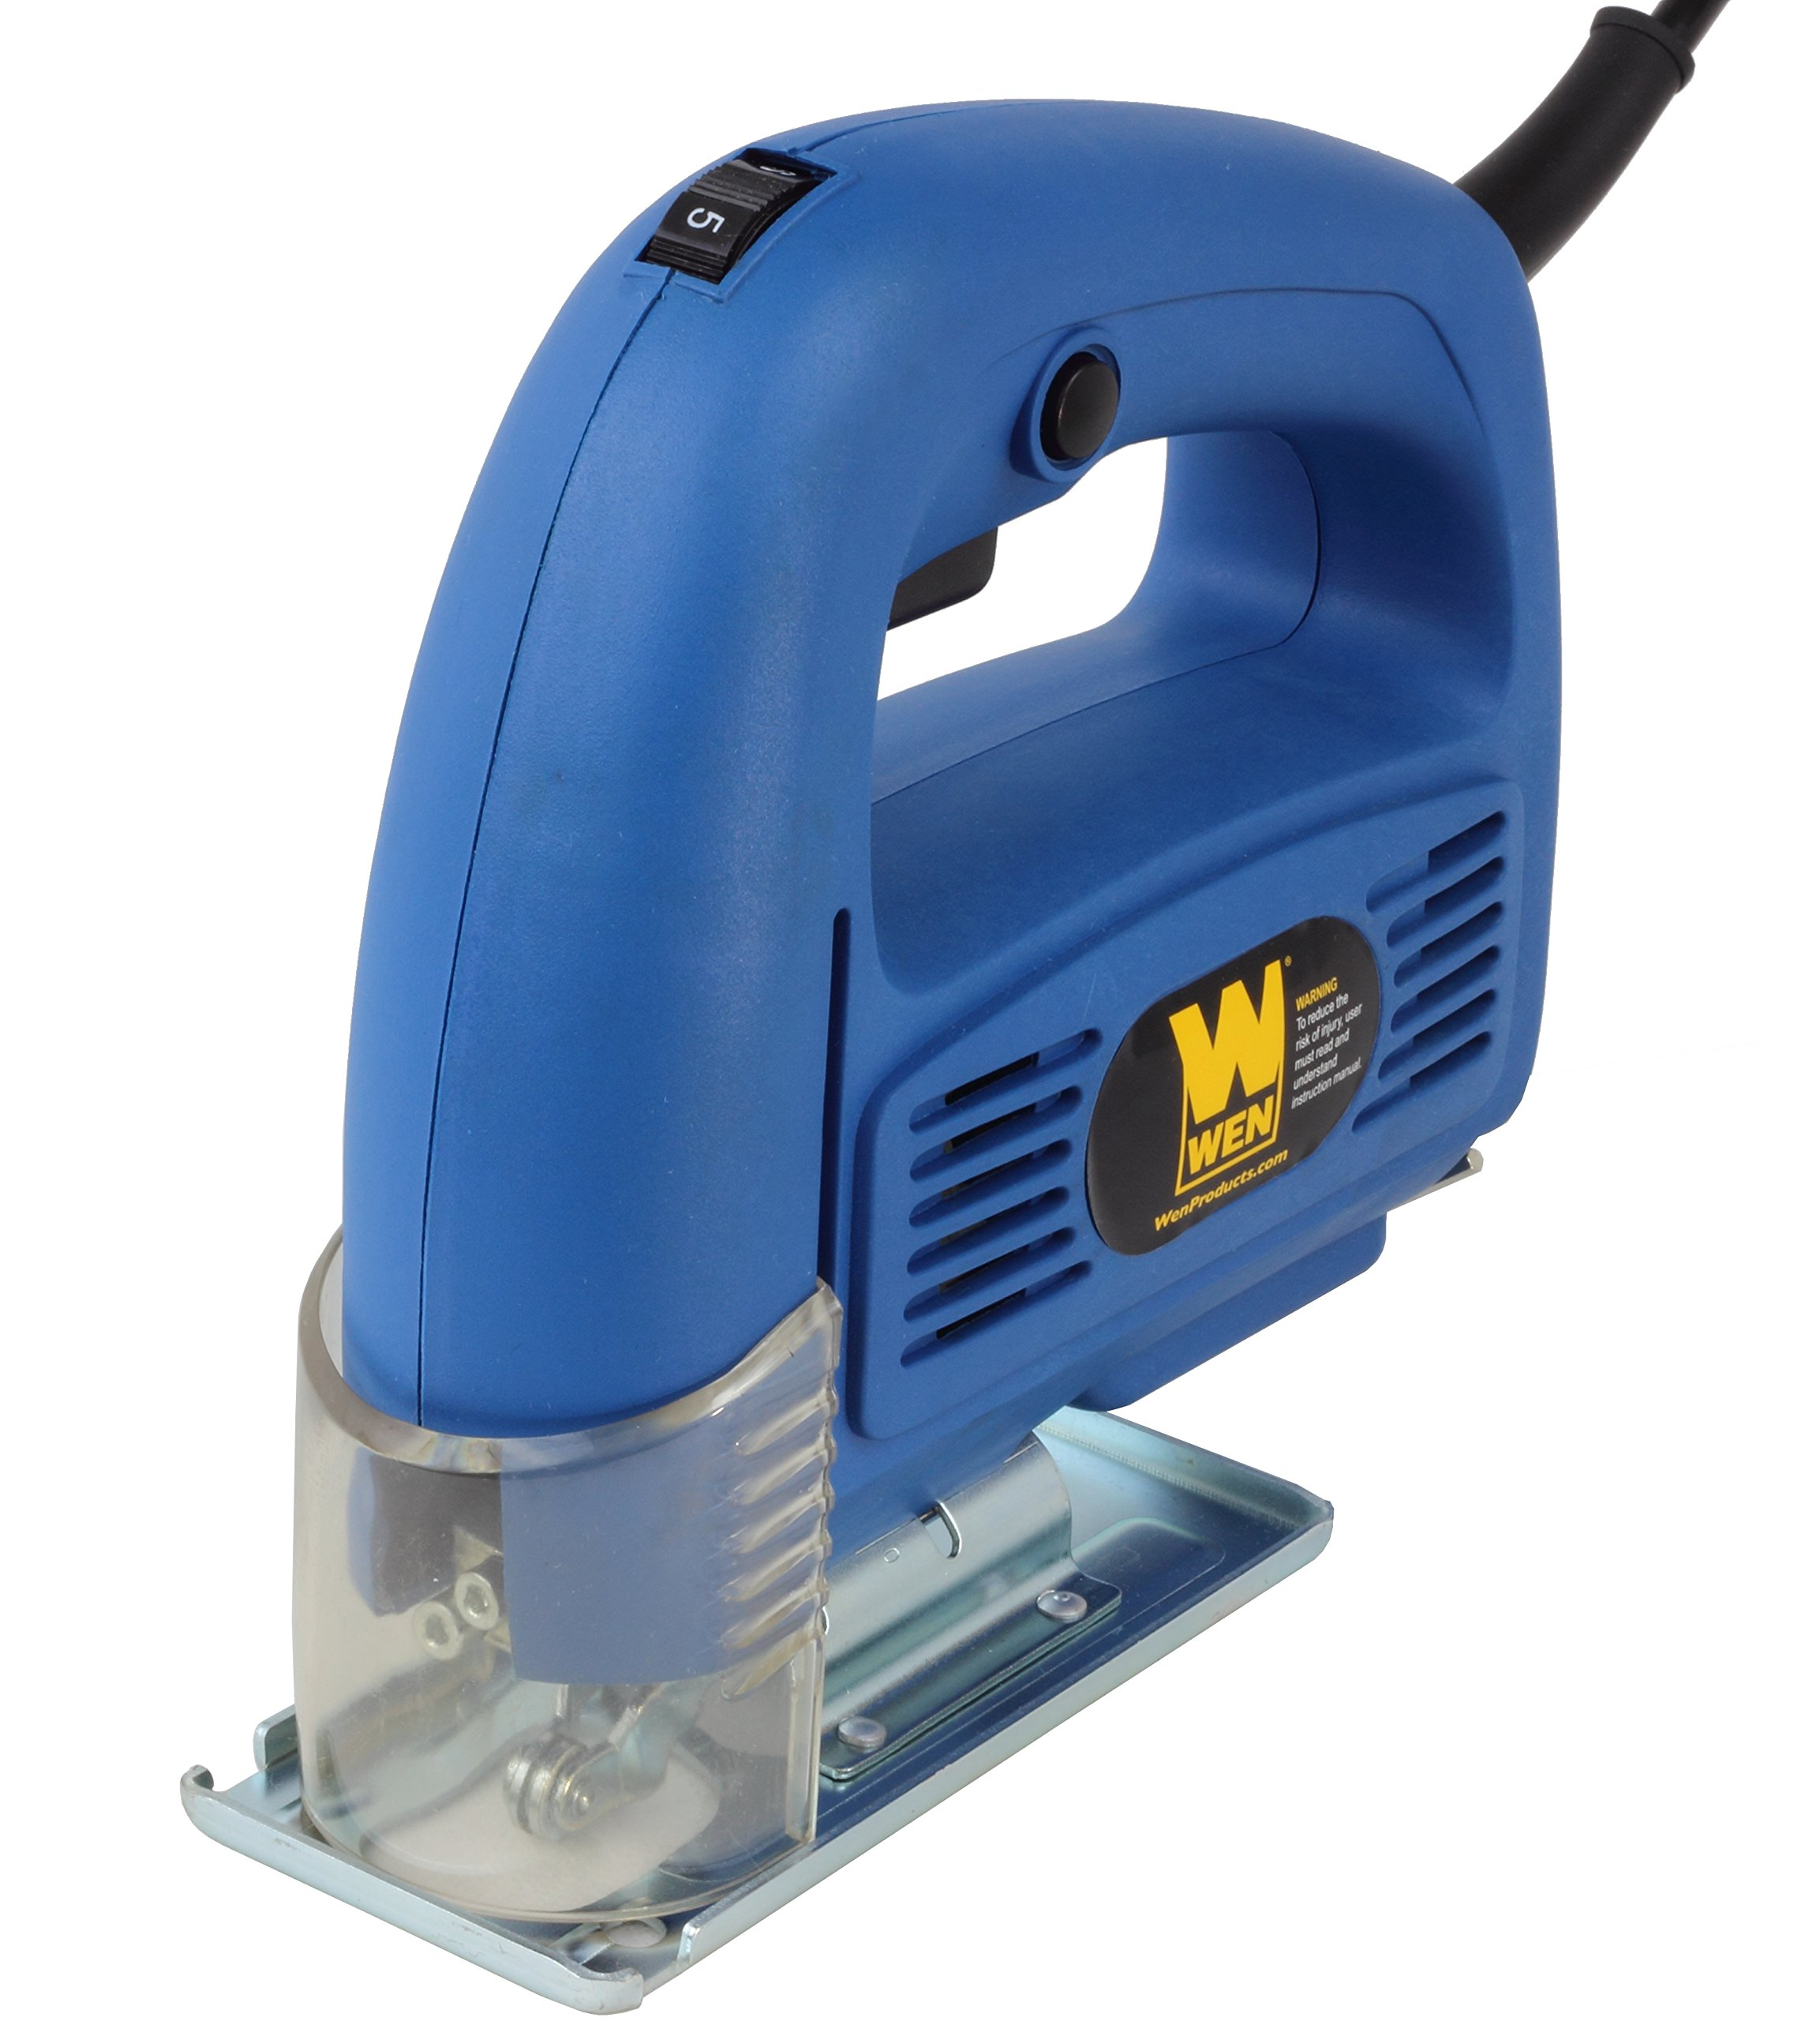 WEN 3702 Variable Speed Jig Saw